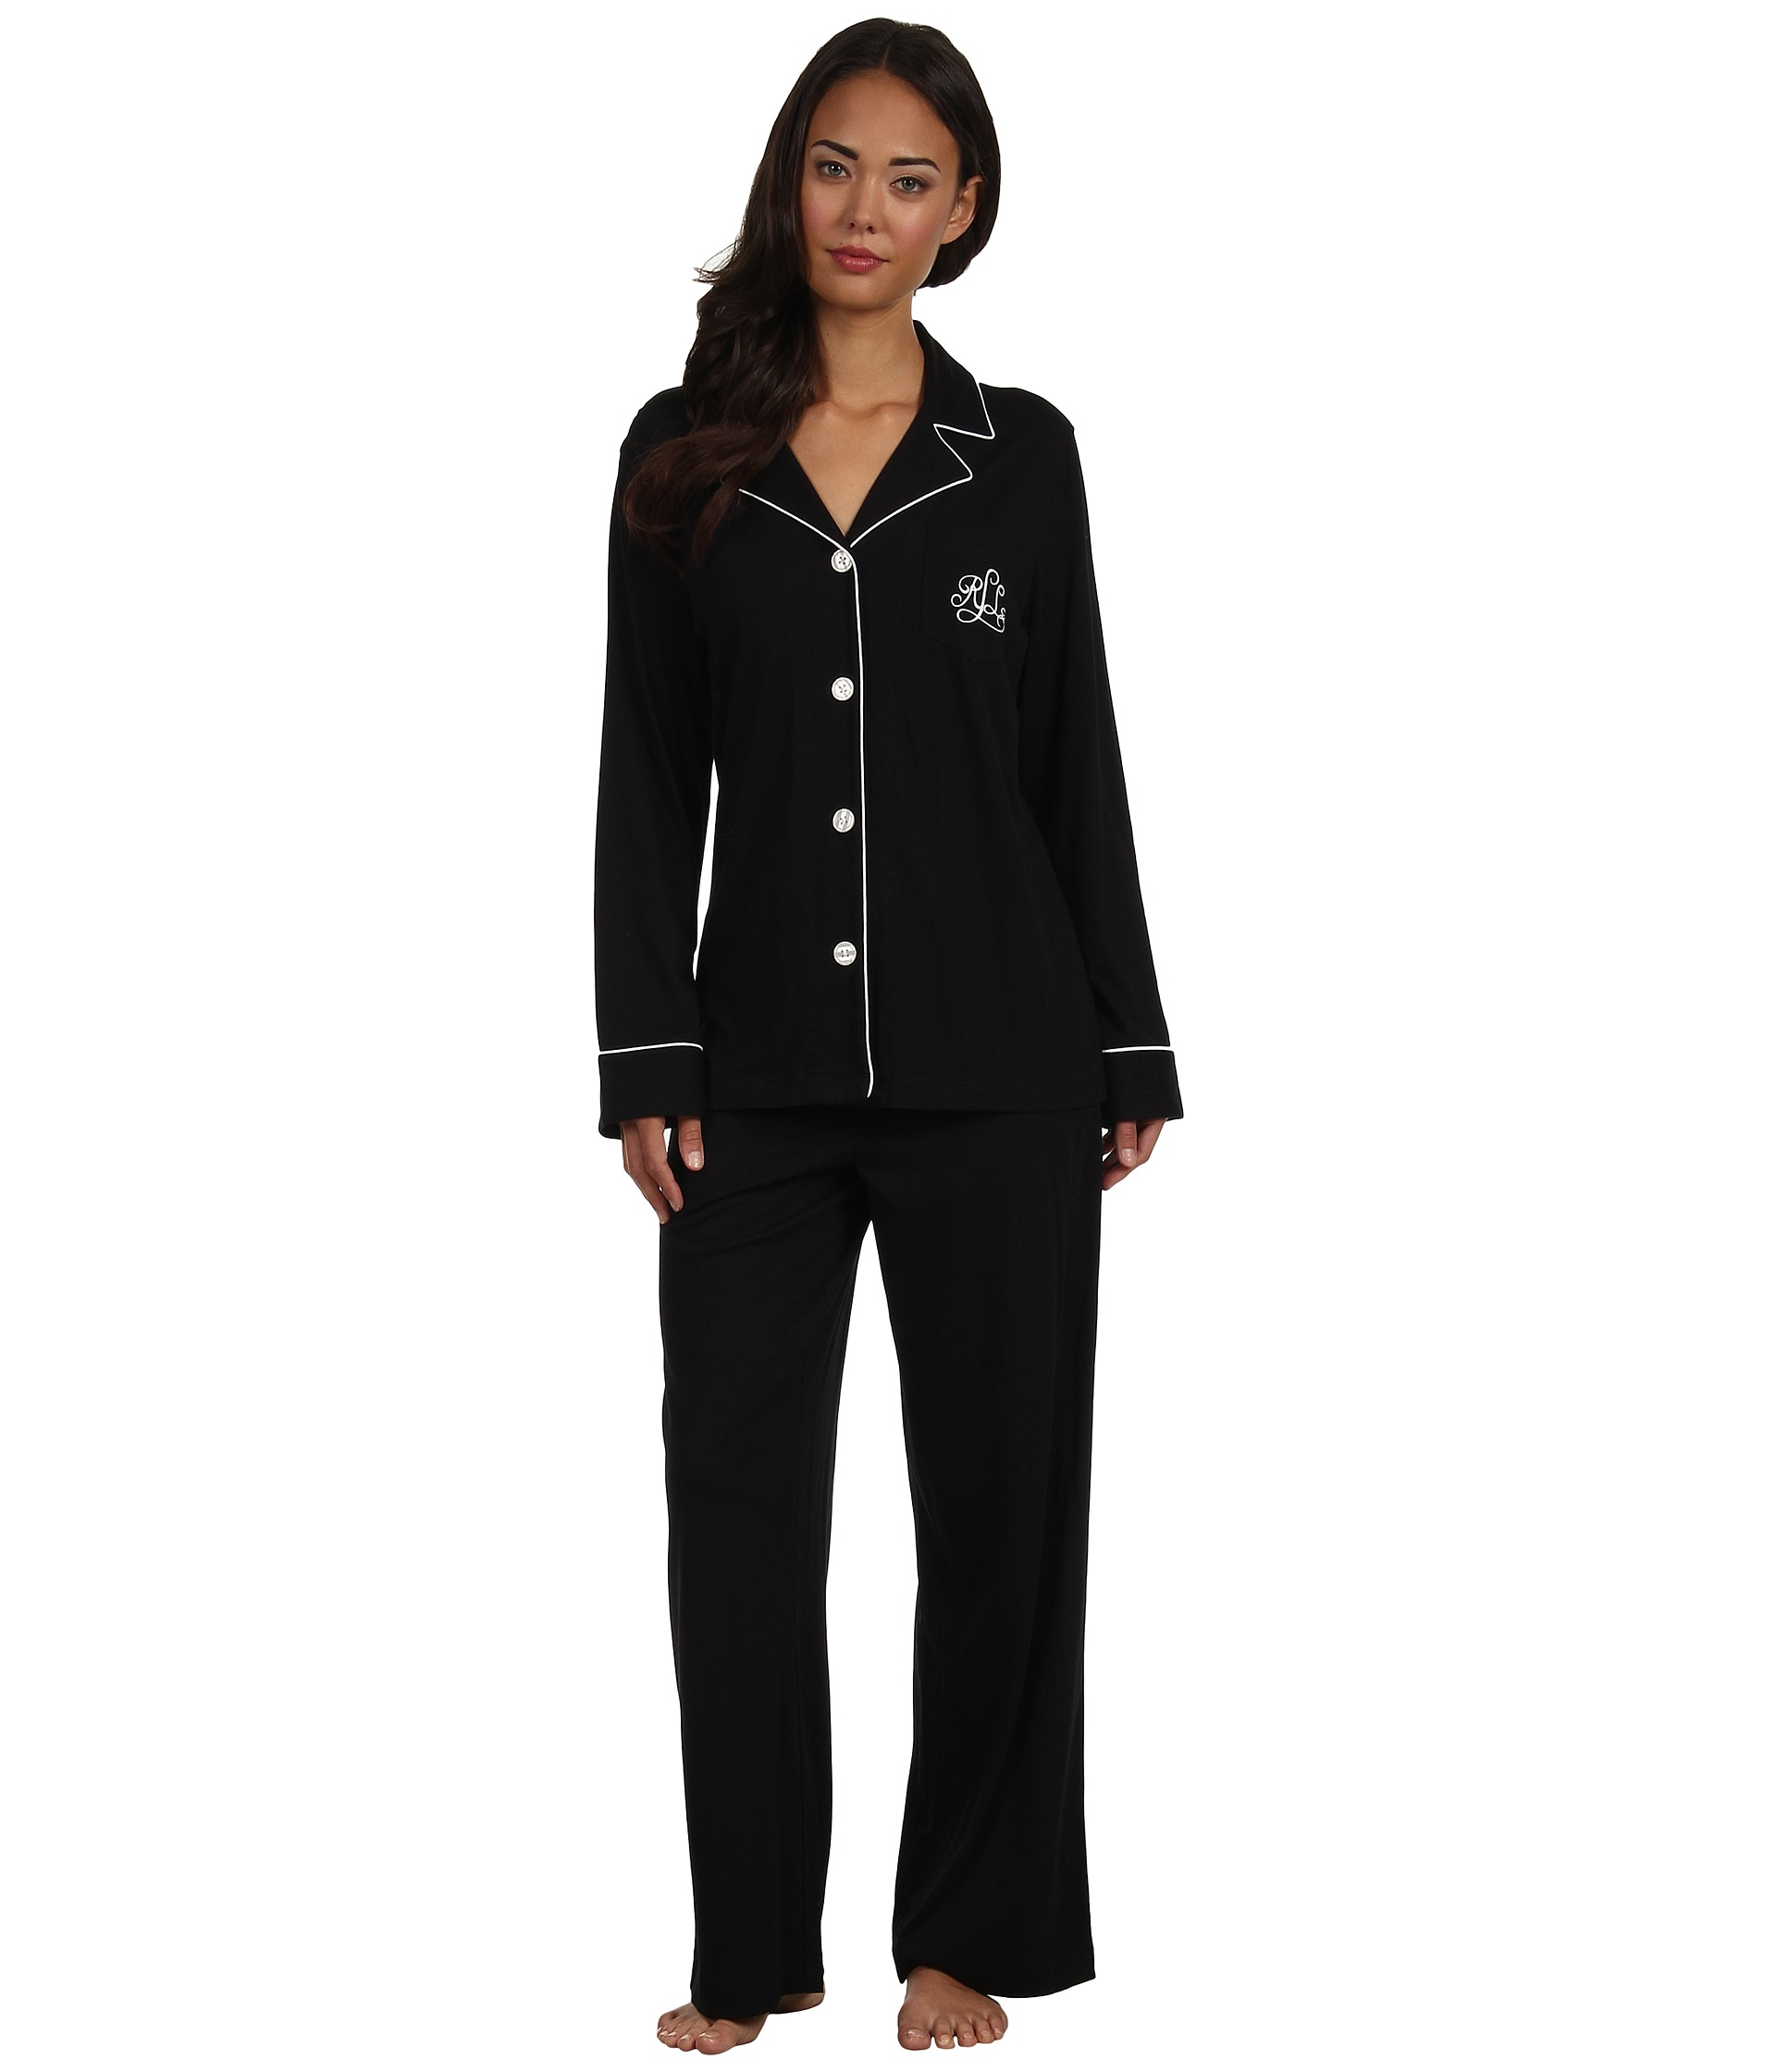 Most Comfortable Pajamas For Women